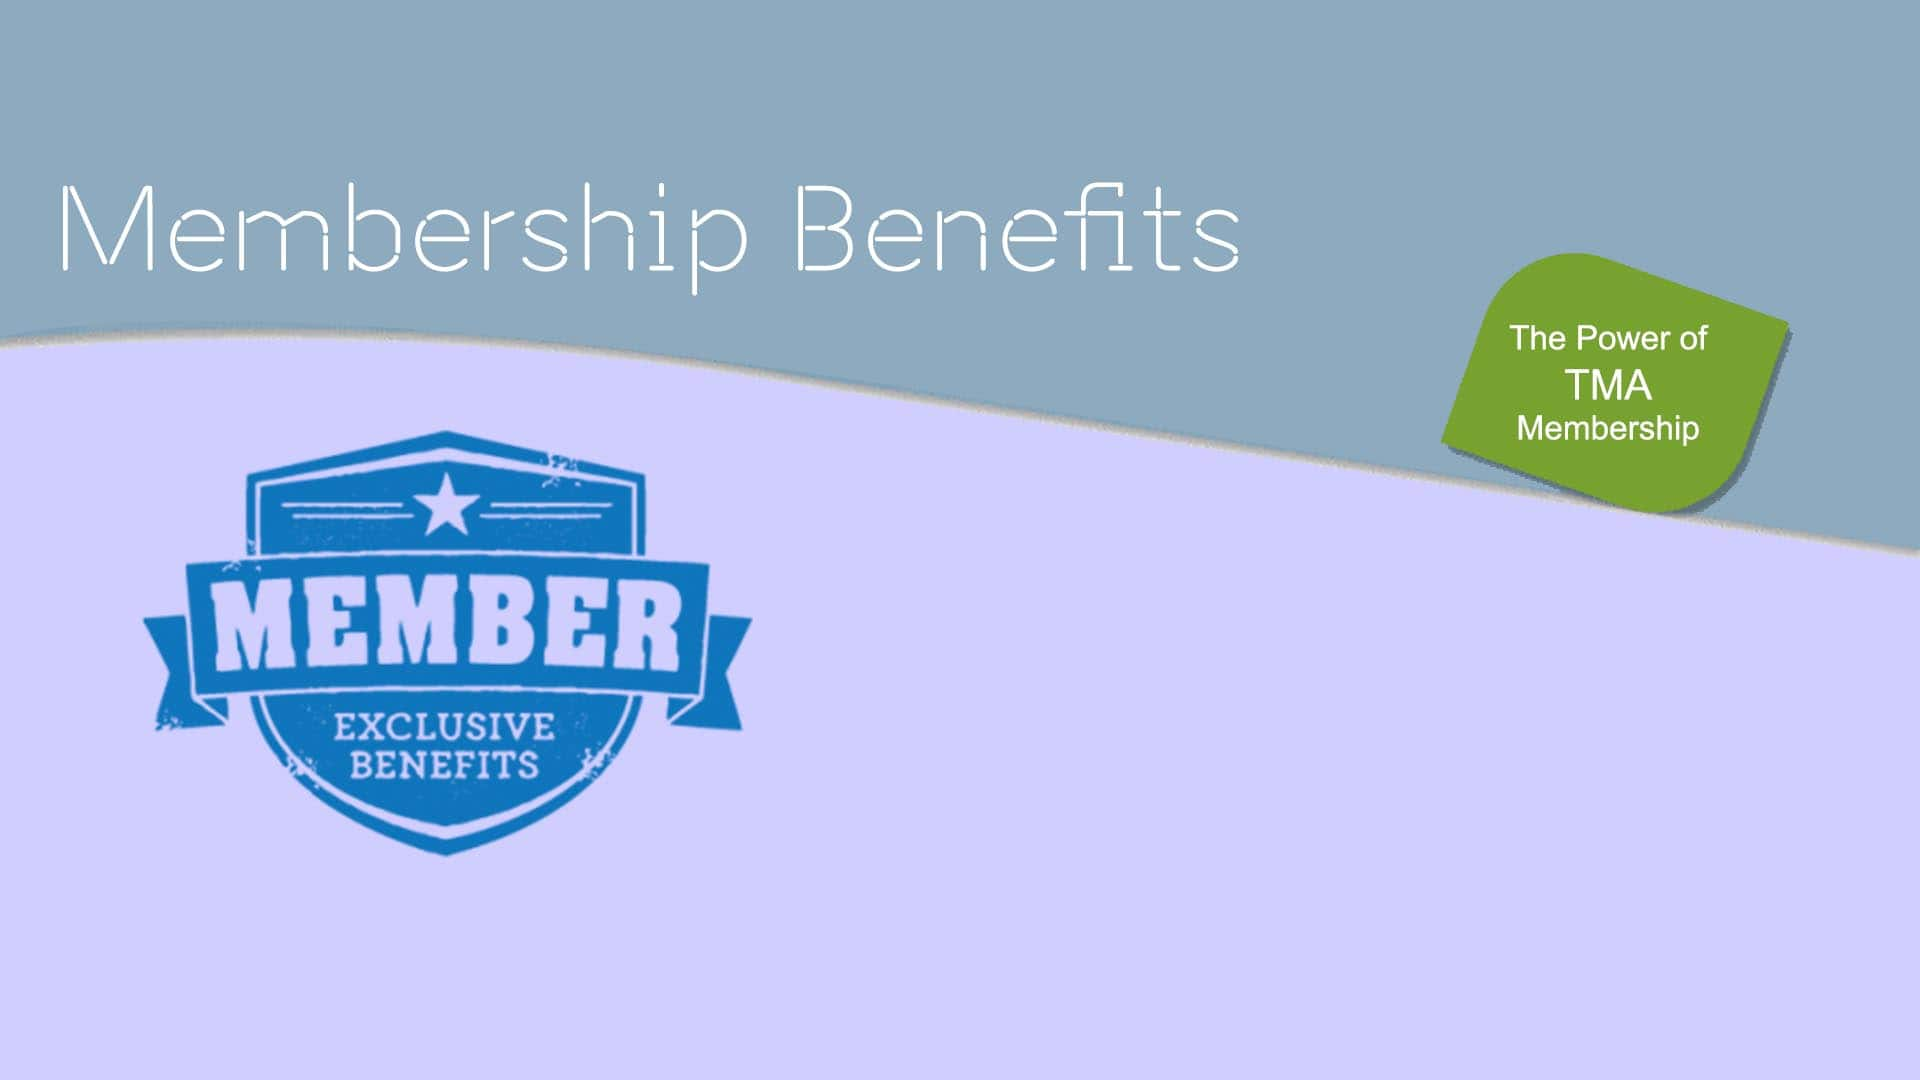 Membership Benefits of The Mobile Association